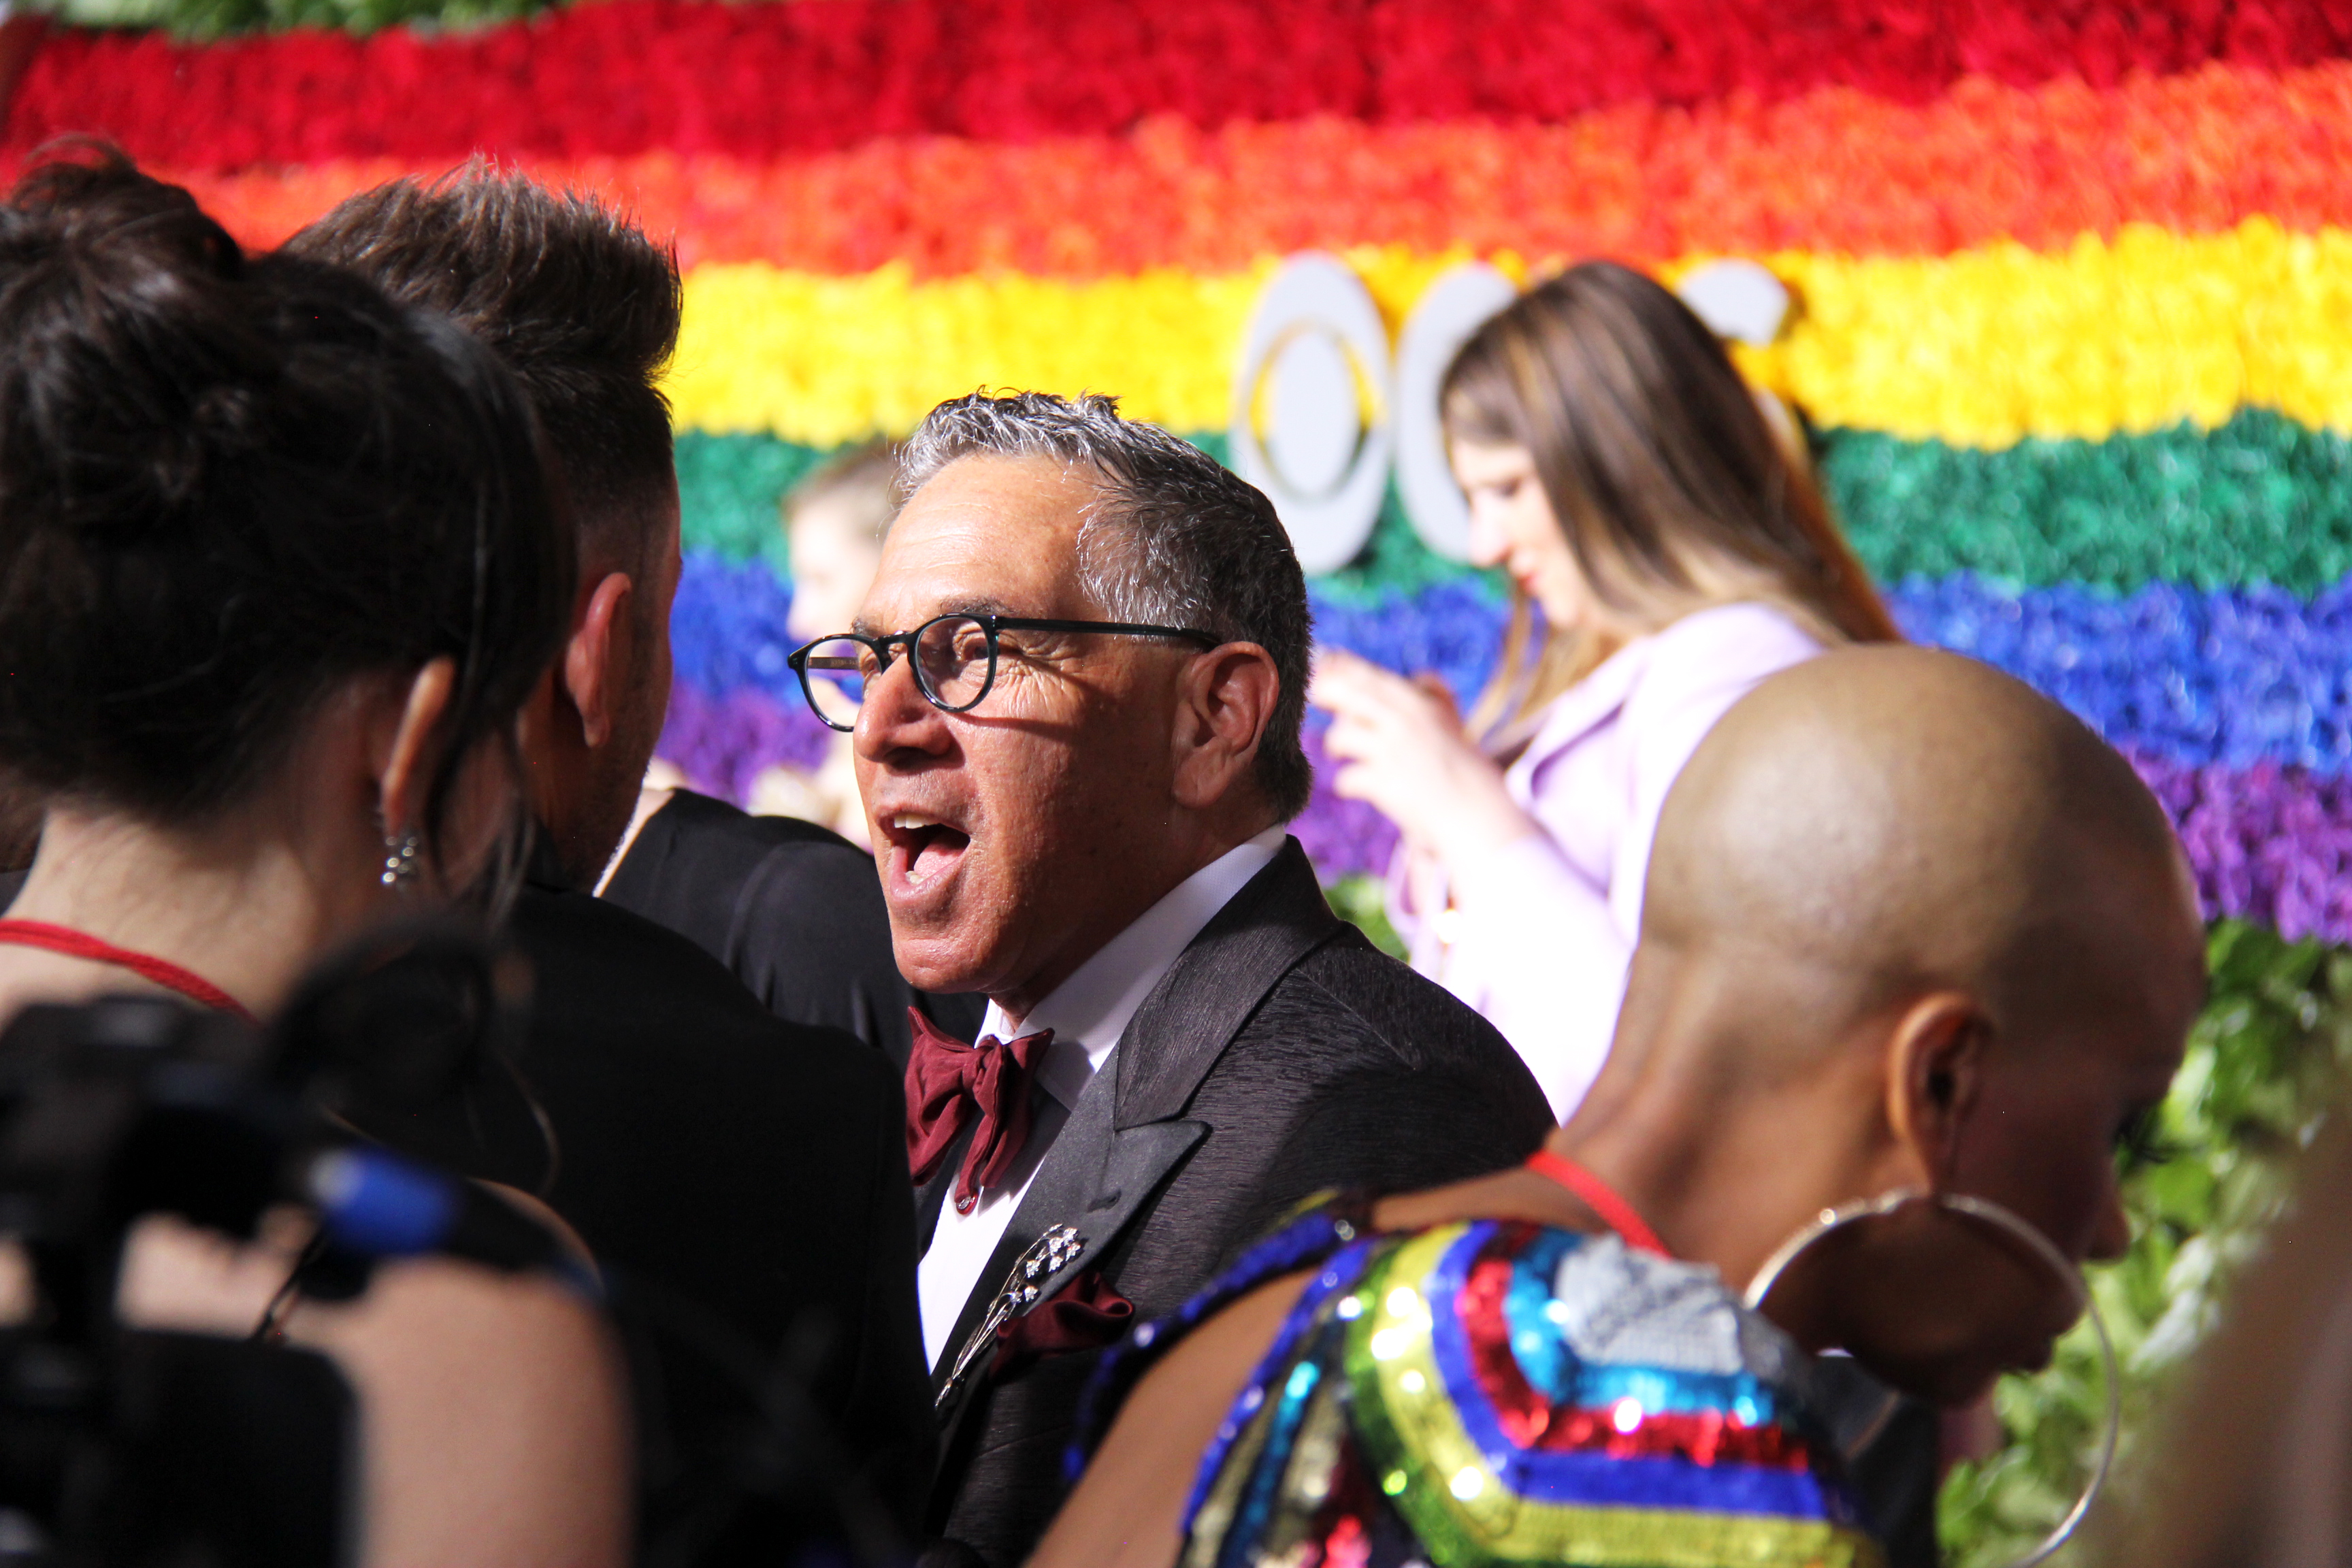 Robert Horn from <i>Tootsie</i> on the Tony Awards red carpet. Photo by Broadway Direct.